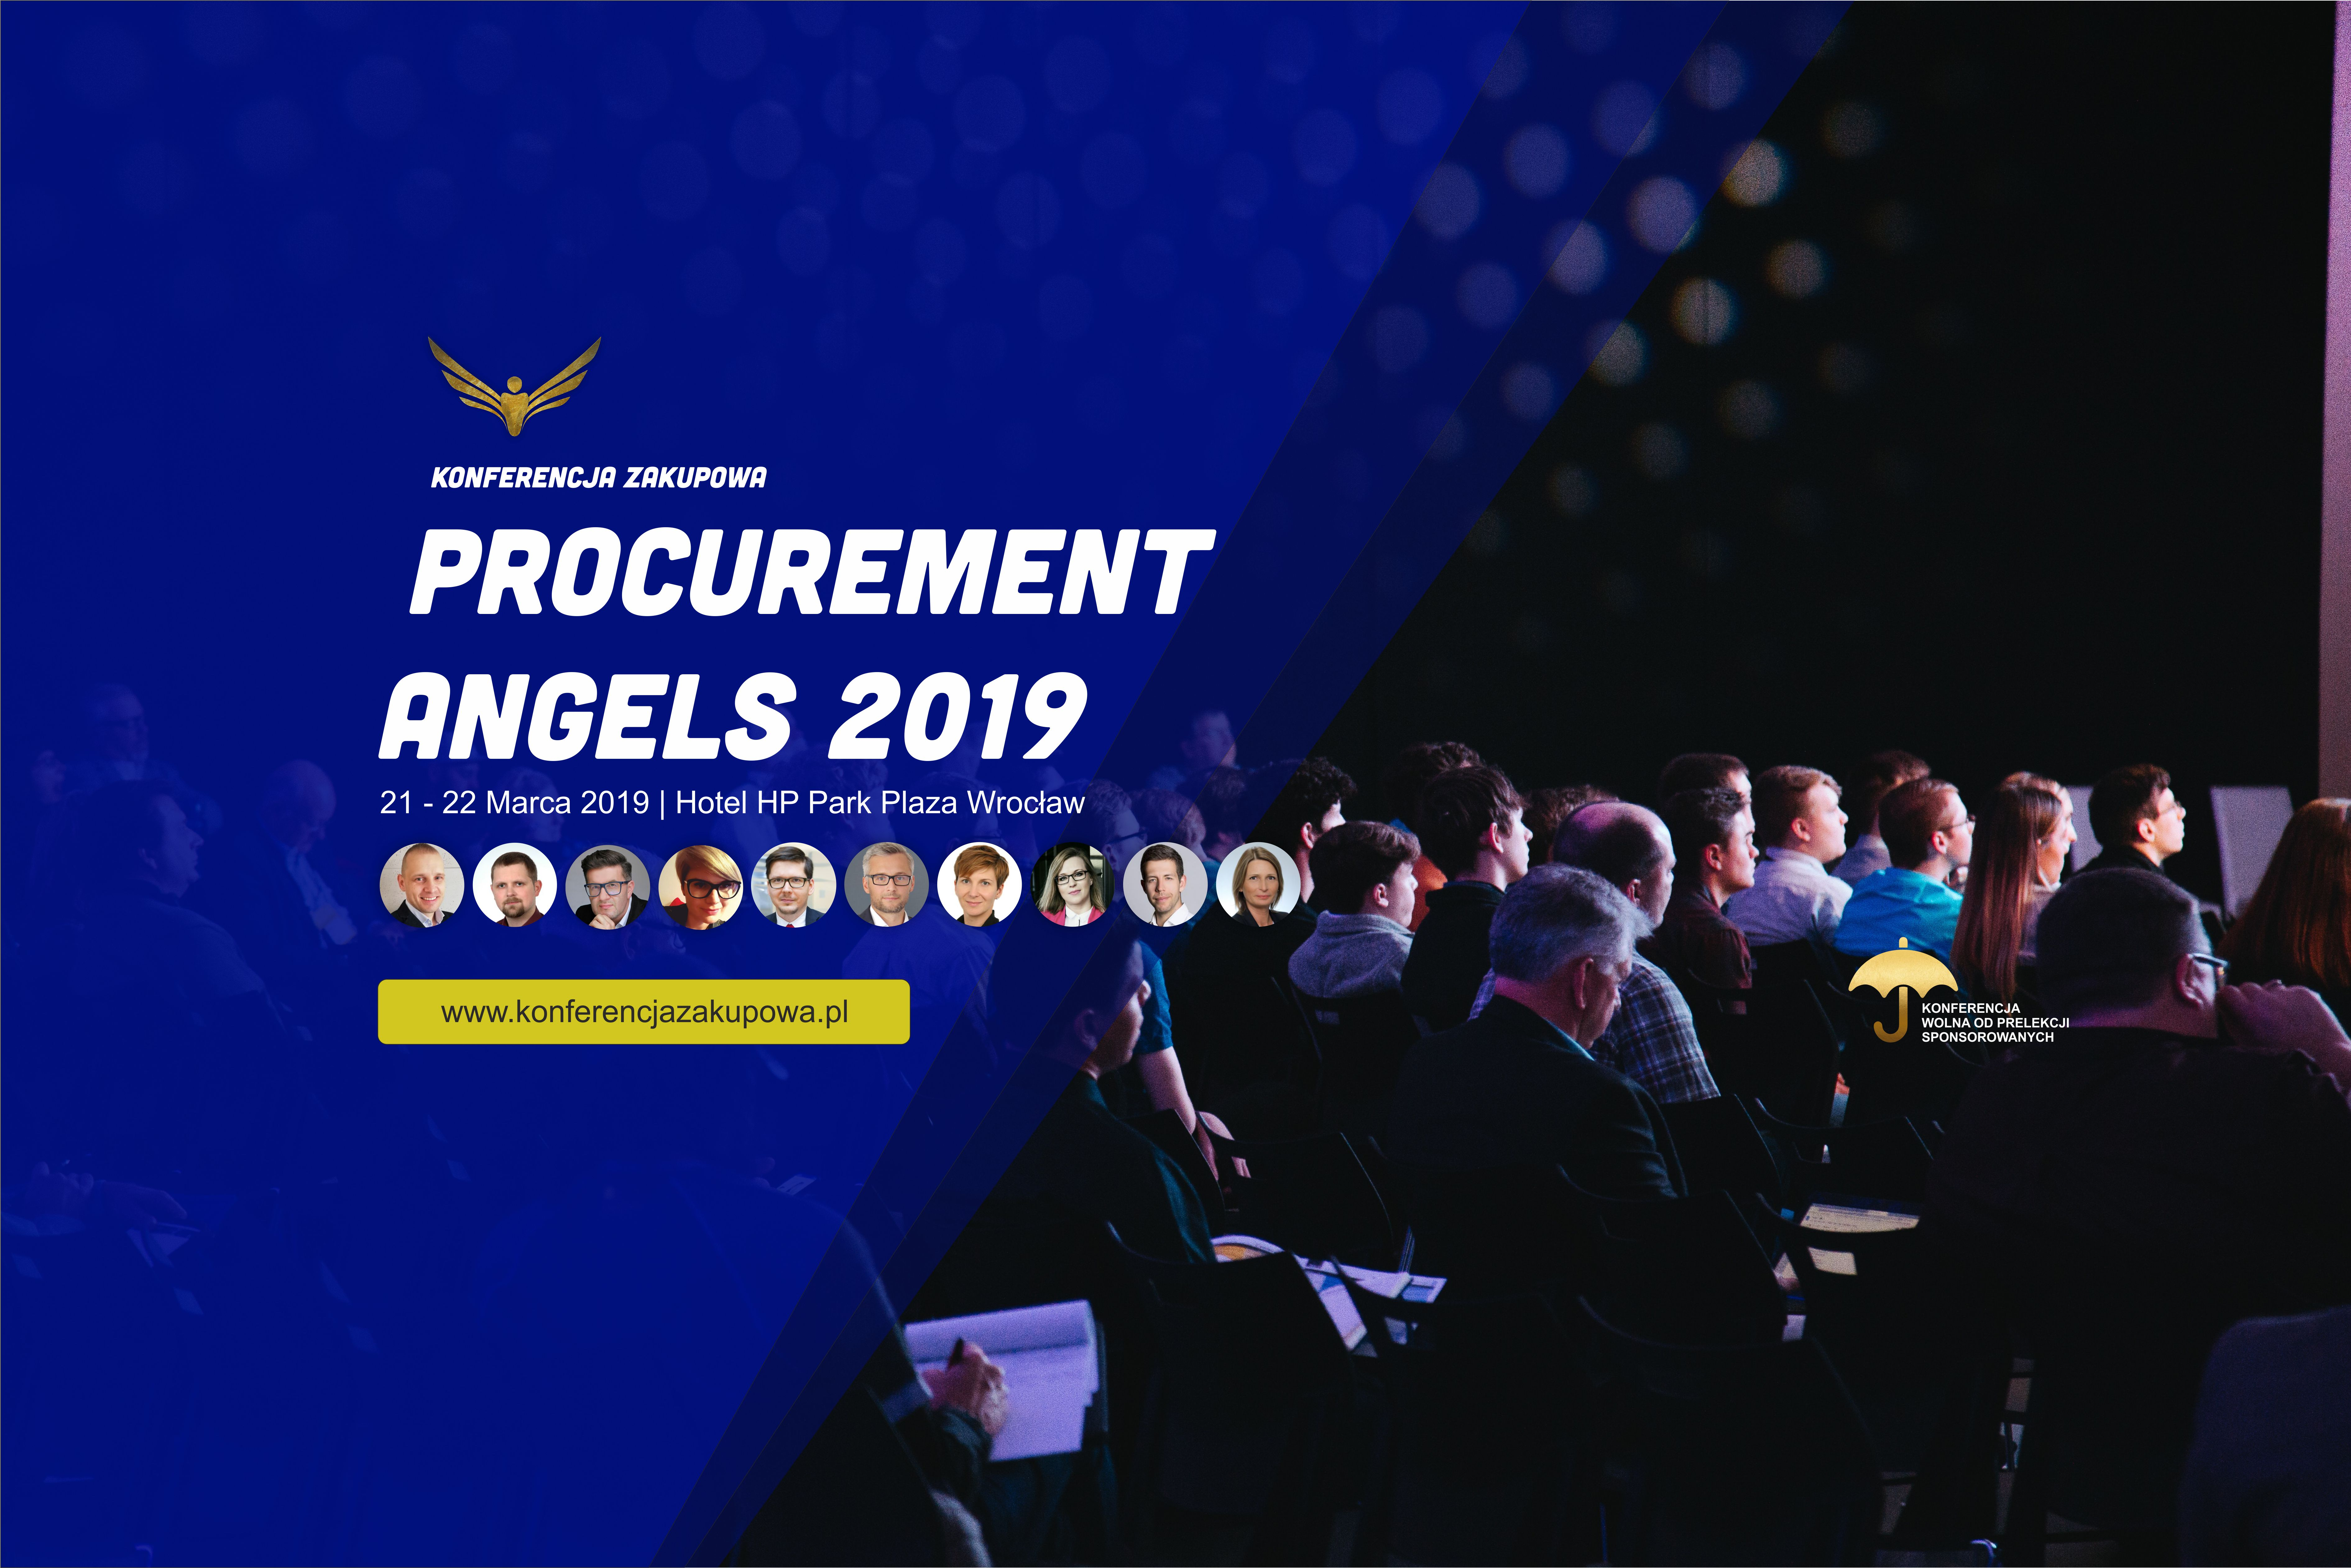 procurement angels konferencja zakupowa 2019